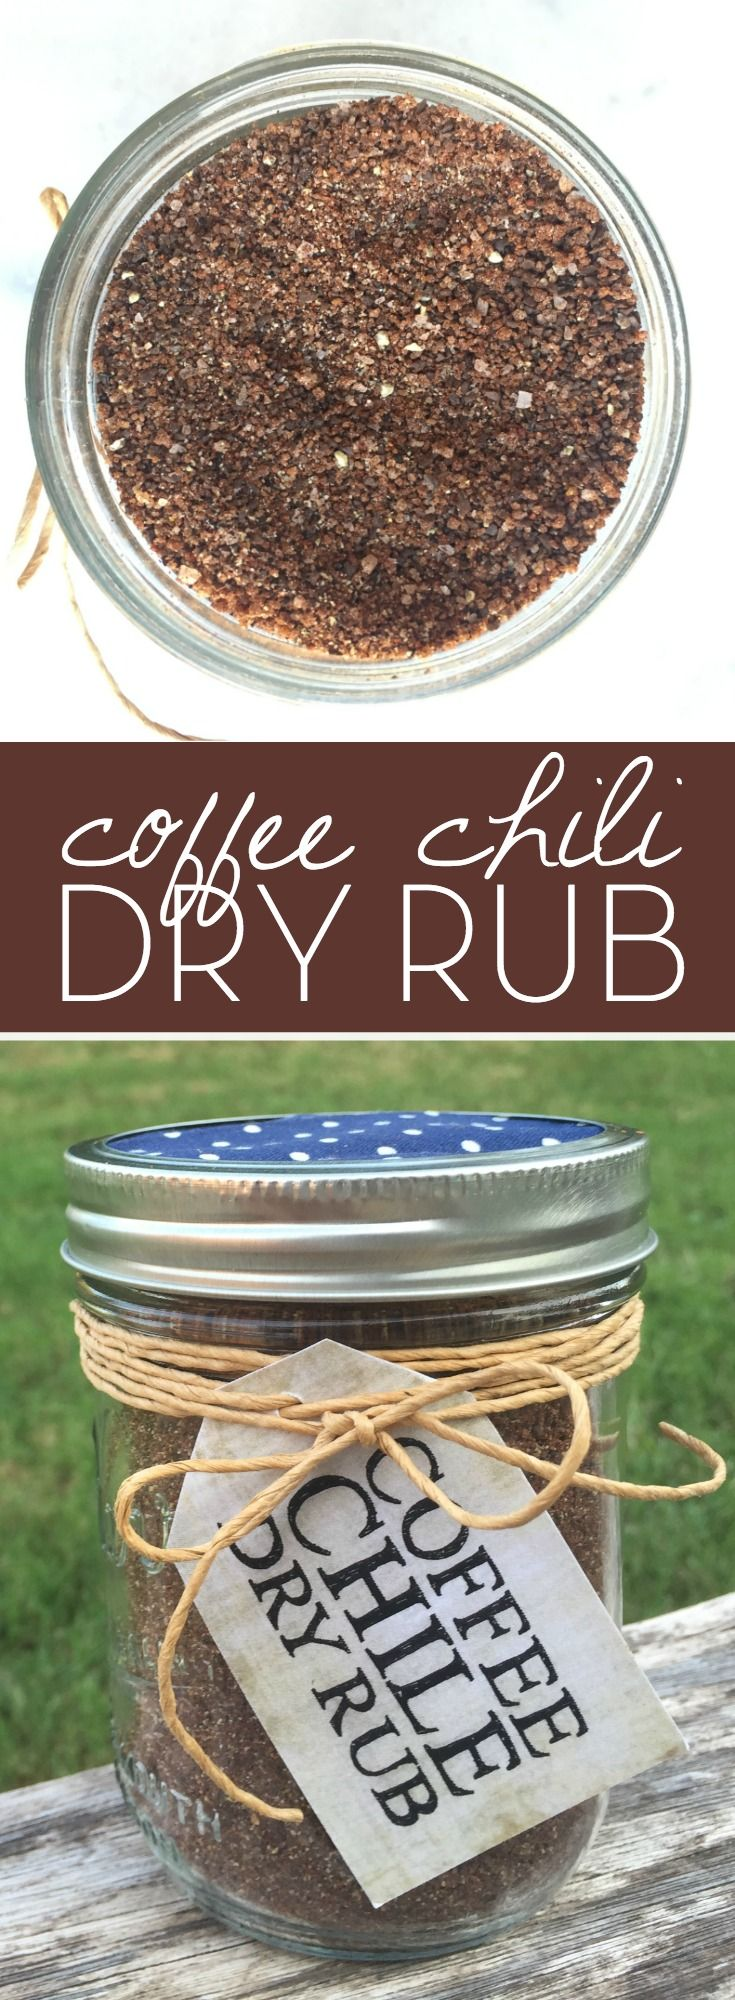 Whip up a batch of this Coffee Chili Dry Rub to help you spice up your next…